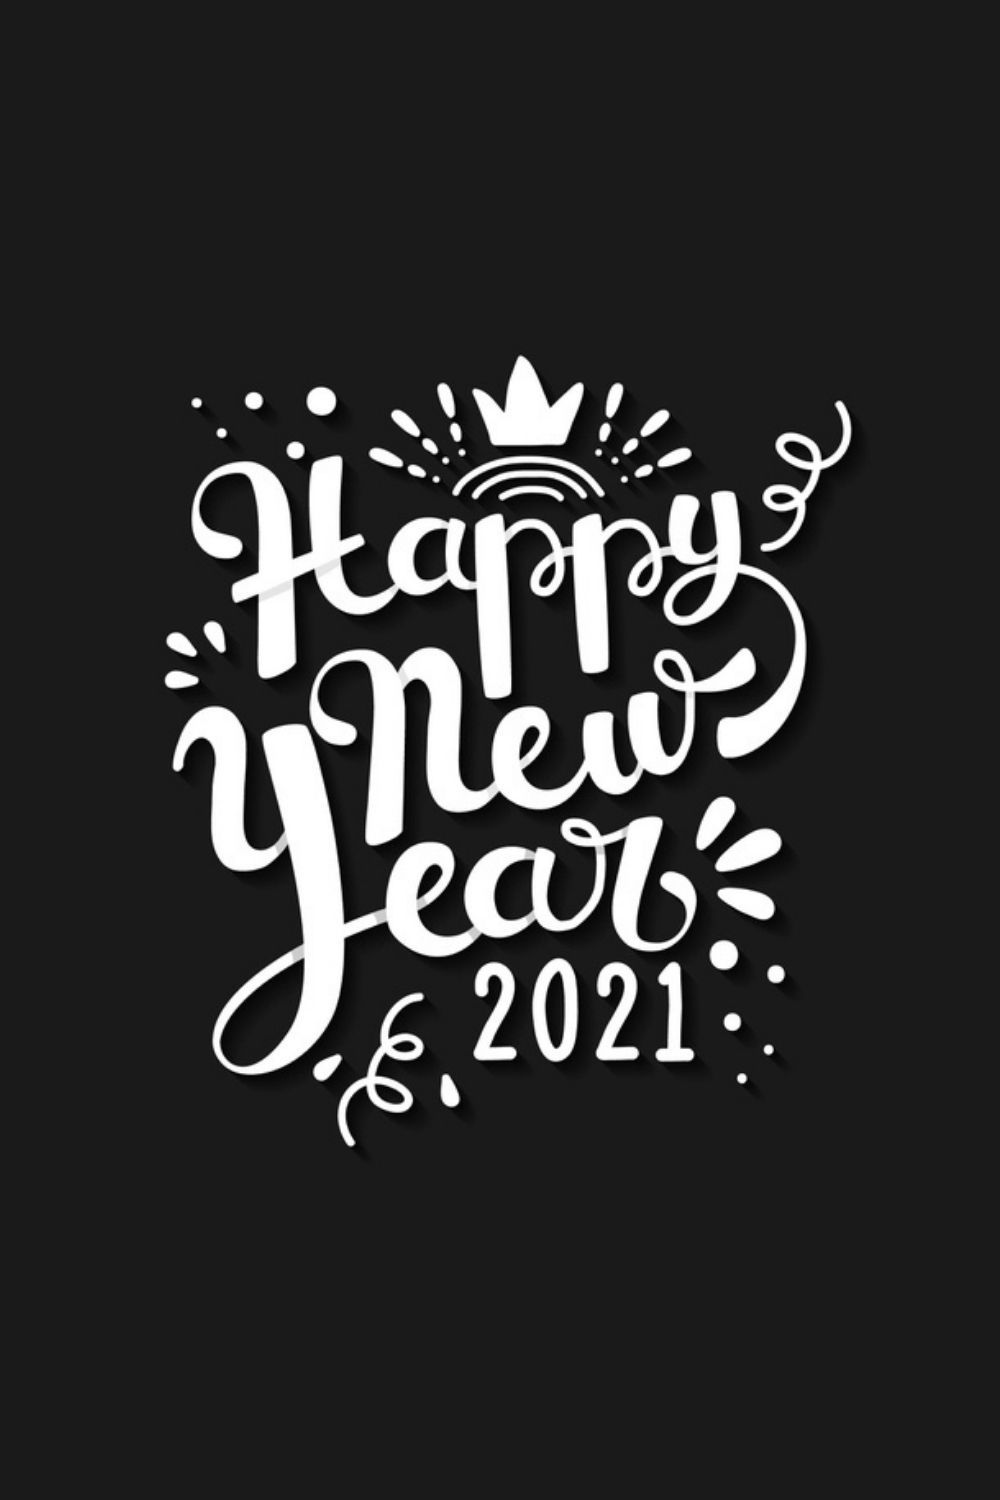 New Year Cool Wallpapers Pictures 2021 Free Hd For Iphone And Android Mobiles Happy New Year Download Happy New Year Images Happy New Year Pictures